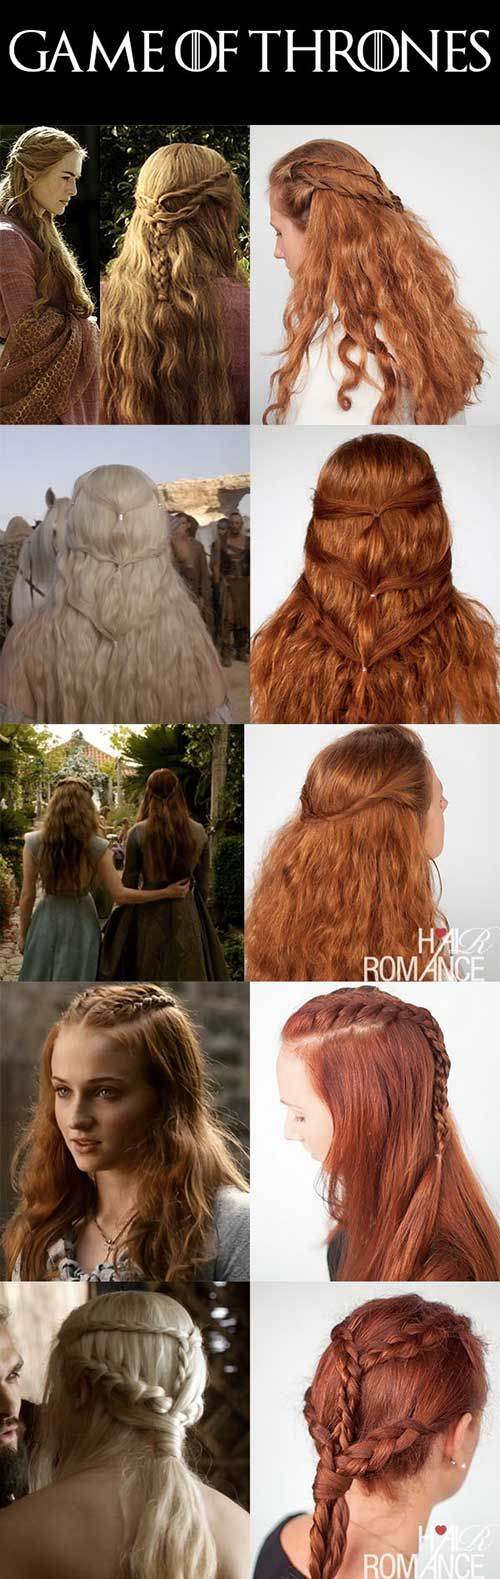 16 best Hair - braids images on Pinterest | Braids, Hairstyles and ...